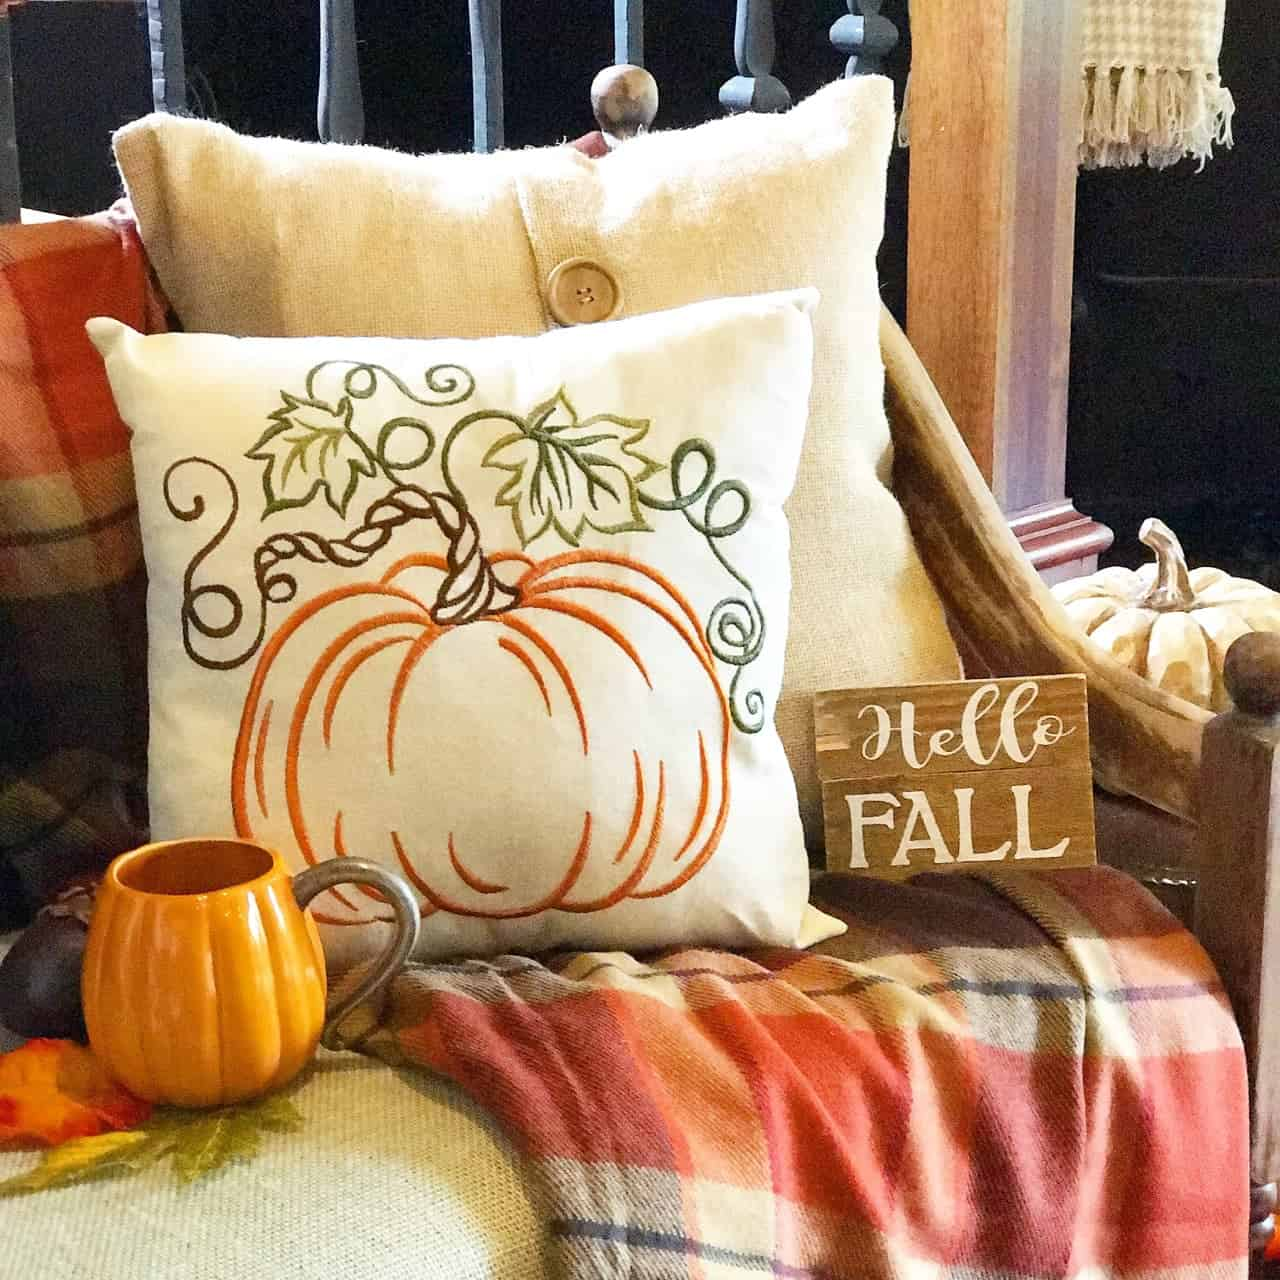 Fall Home Tour: Autumn in the Den and Kitchen | Derby Lane Dreams